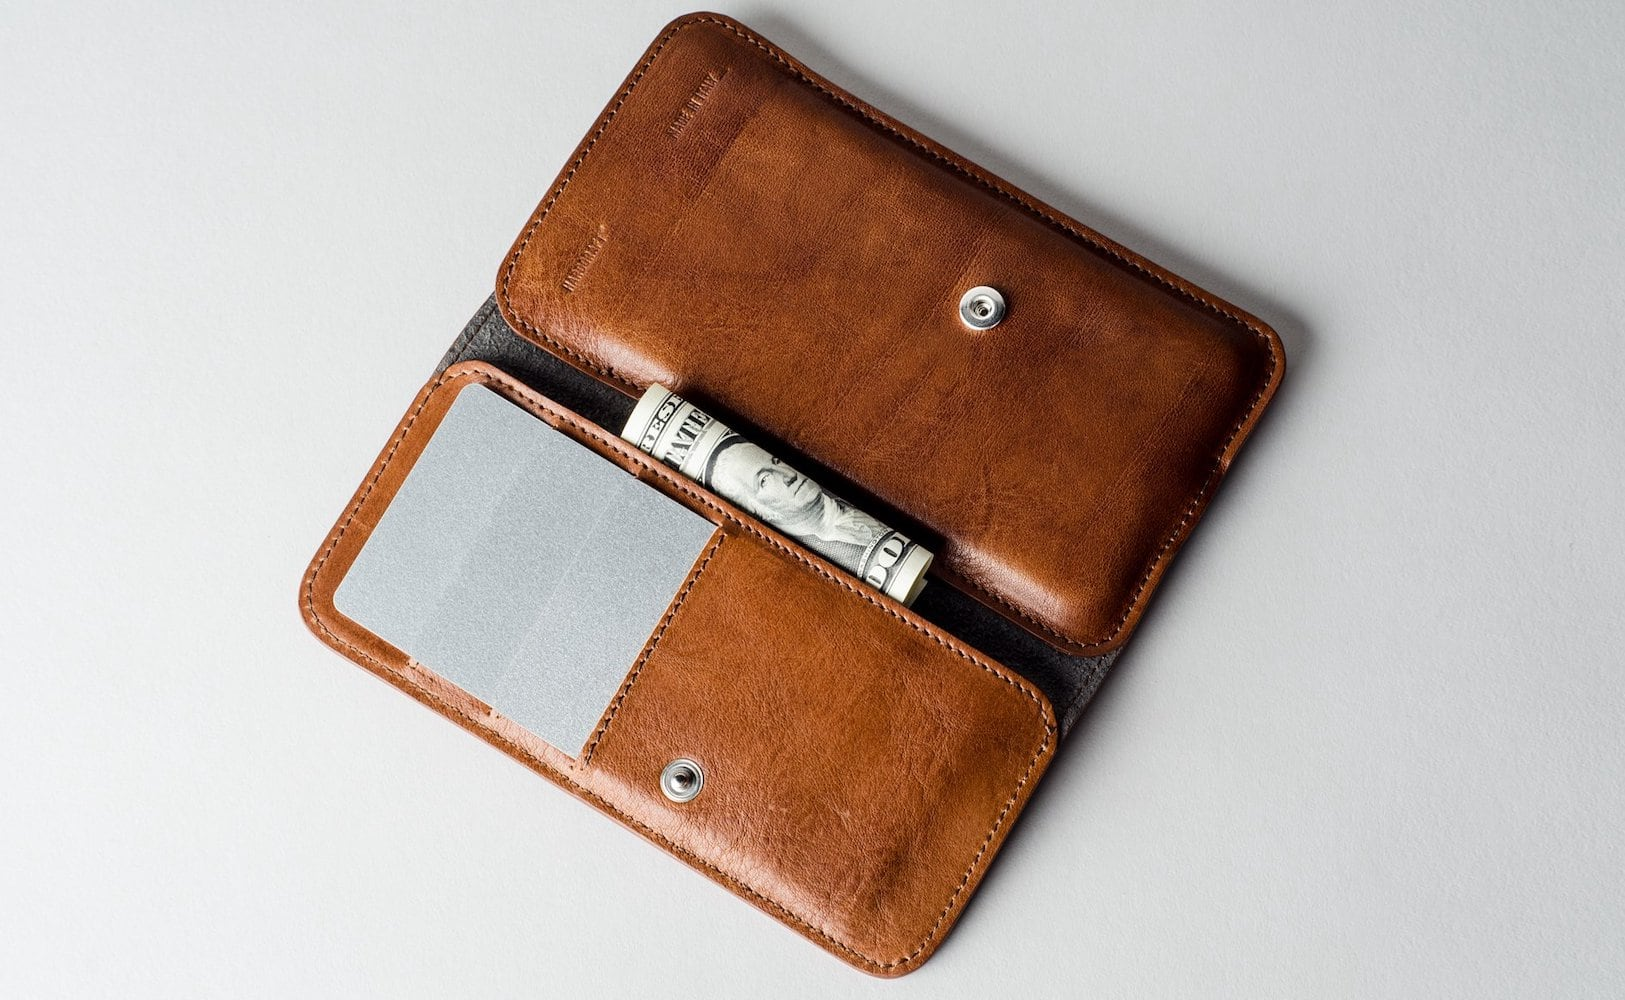 iPhone 11 Pro Wallet Case by hardgraft provides quick-access spots for all your essentials